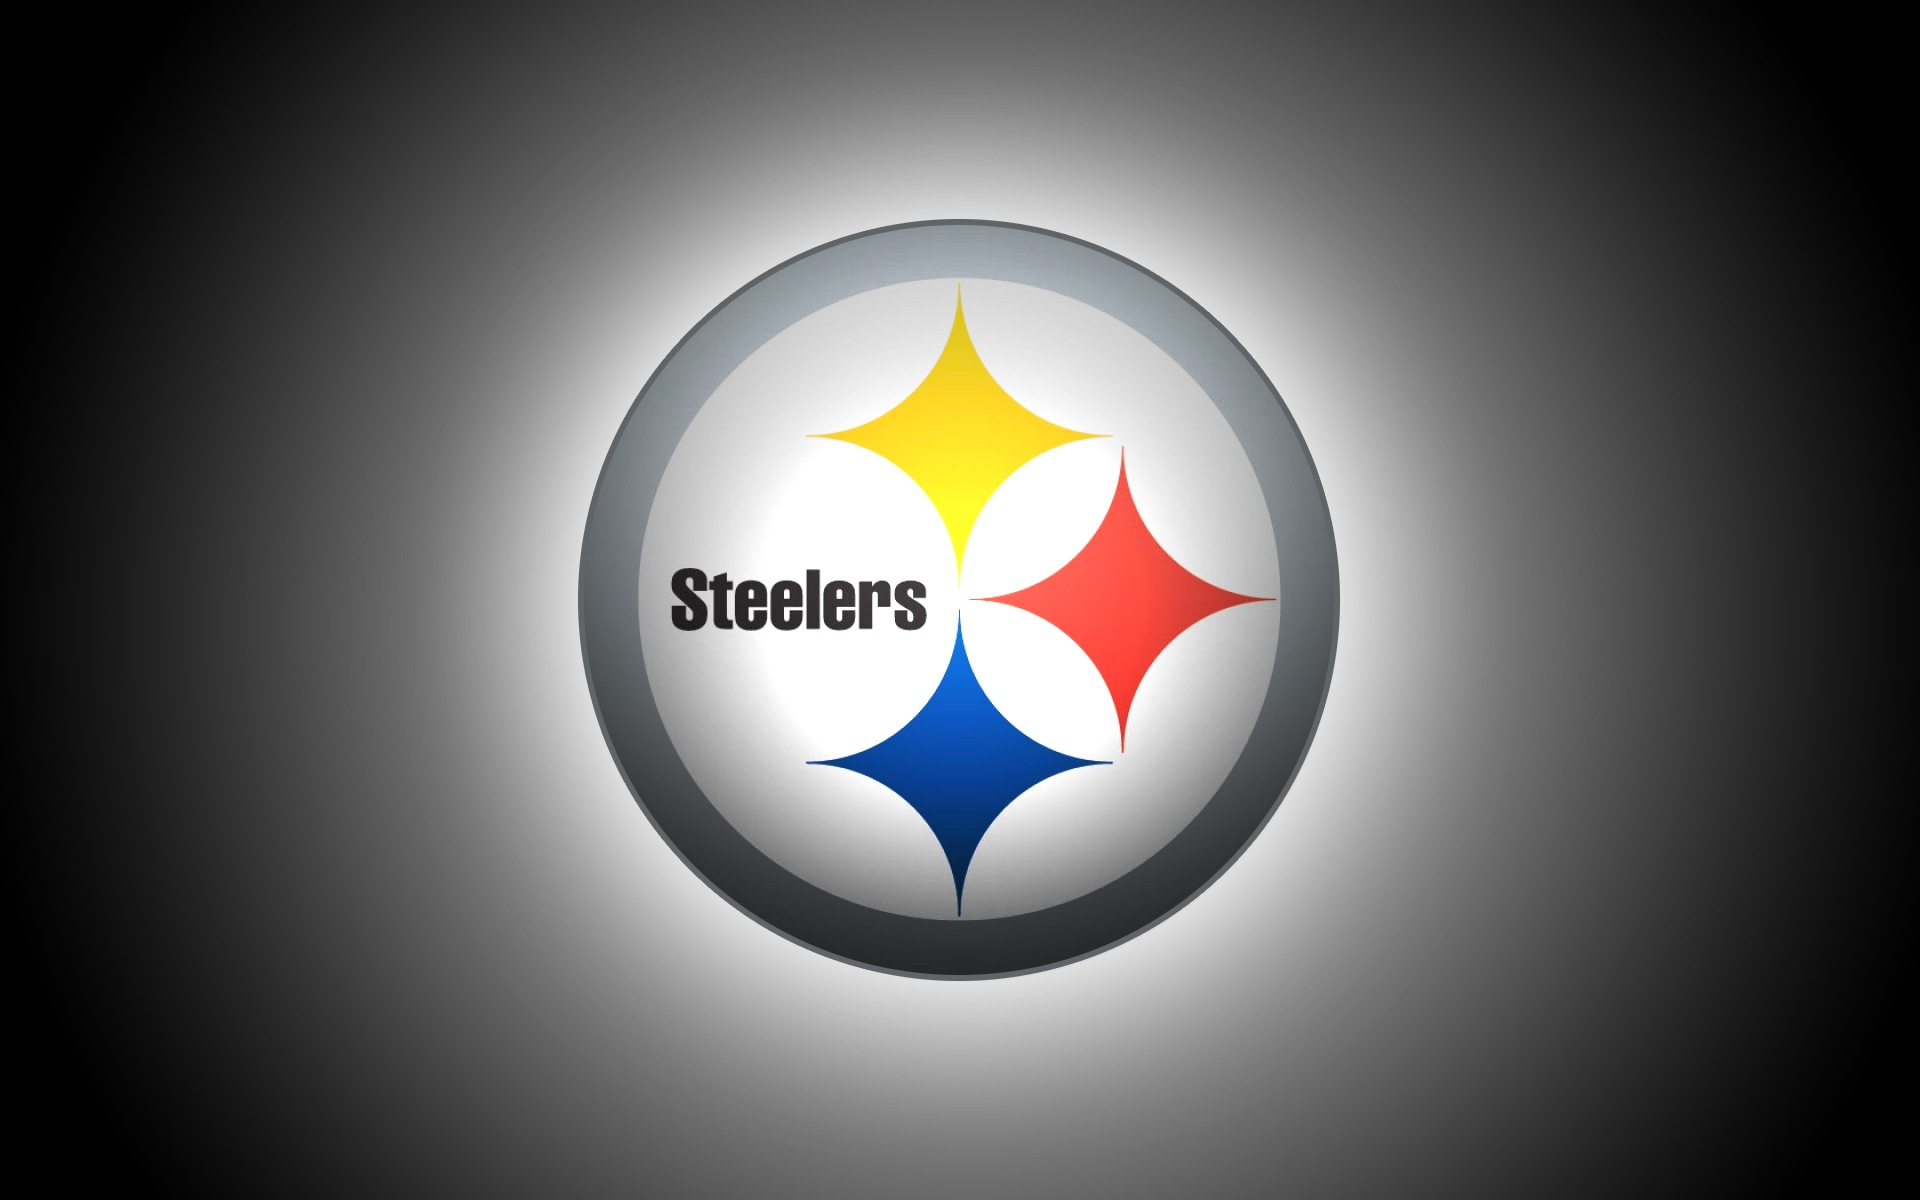 Steelers Wallpaper 1920x1200